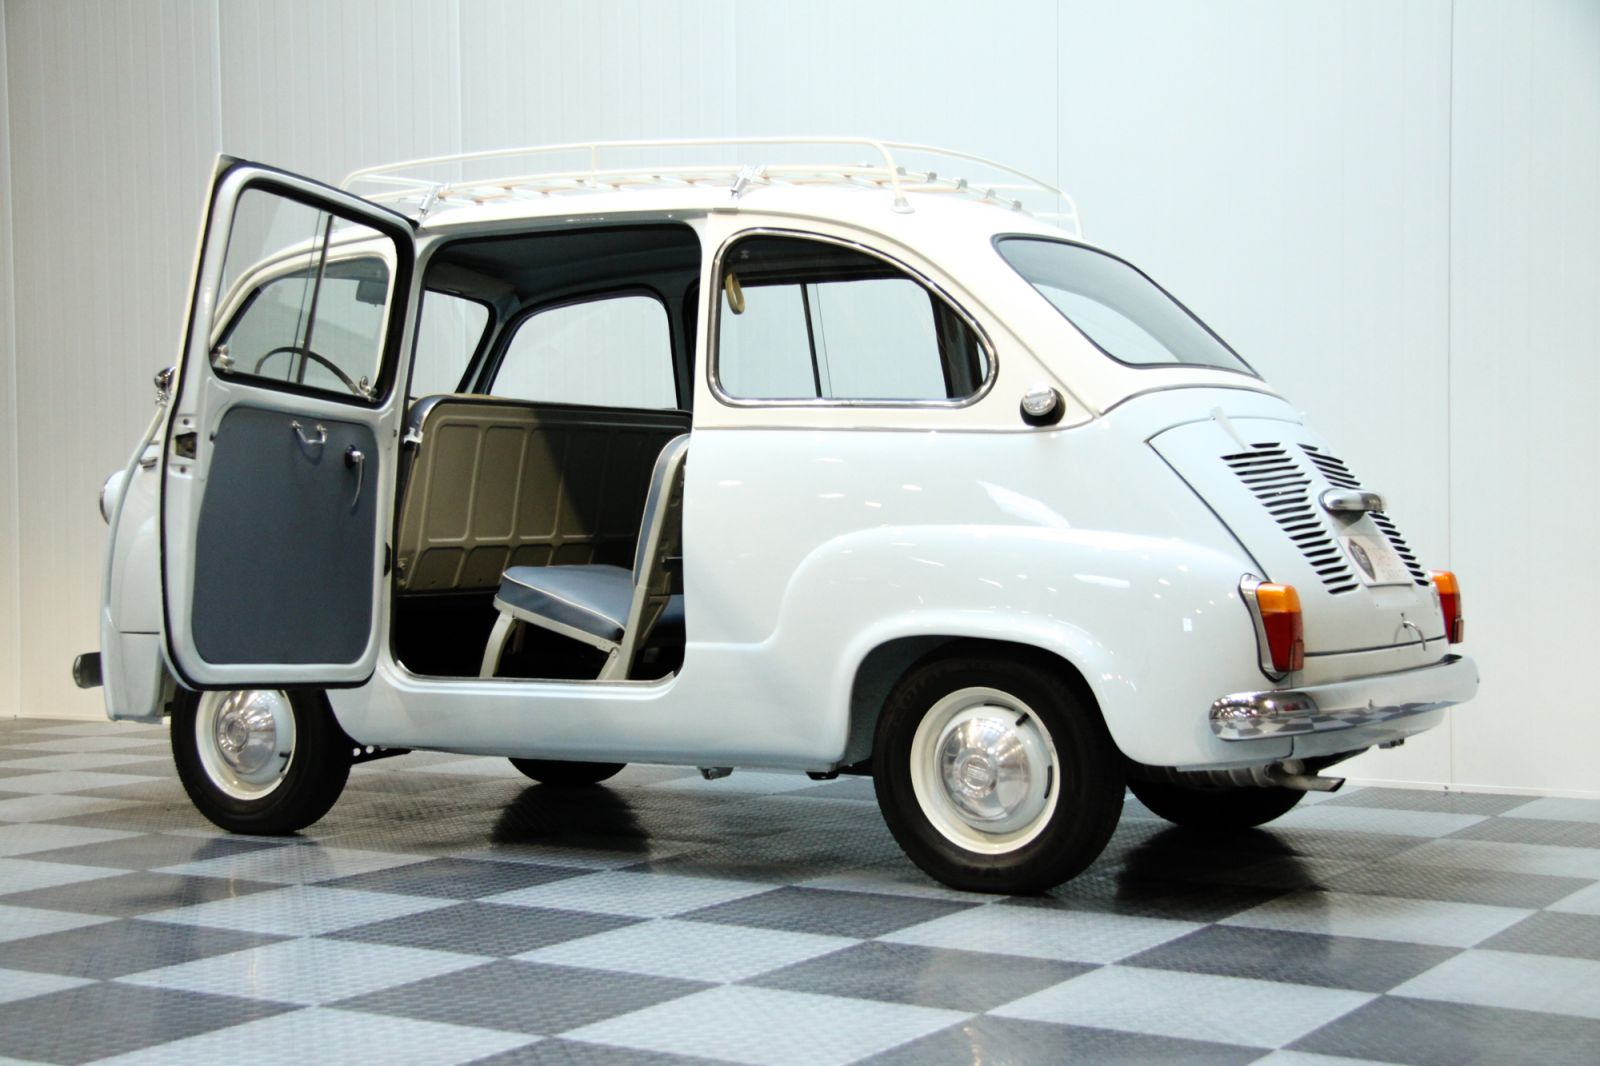 dream garage sold carsfiat fiat 600 multipla. Black Bedroom Furniture Sets. Home Design Ideas